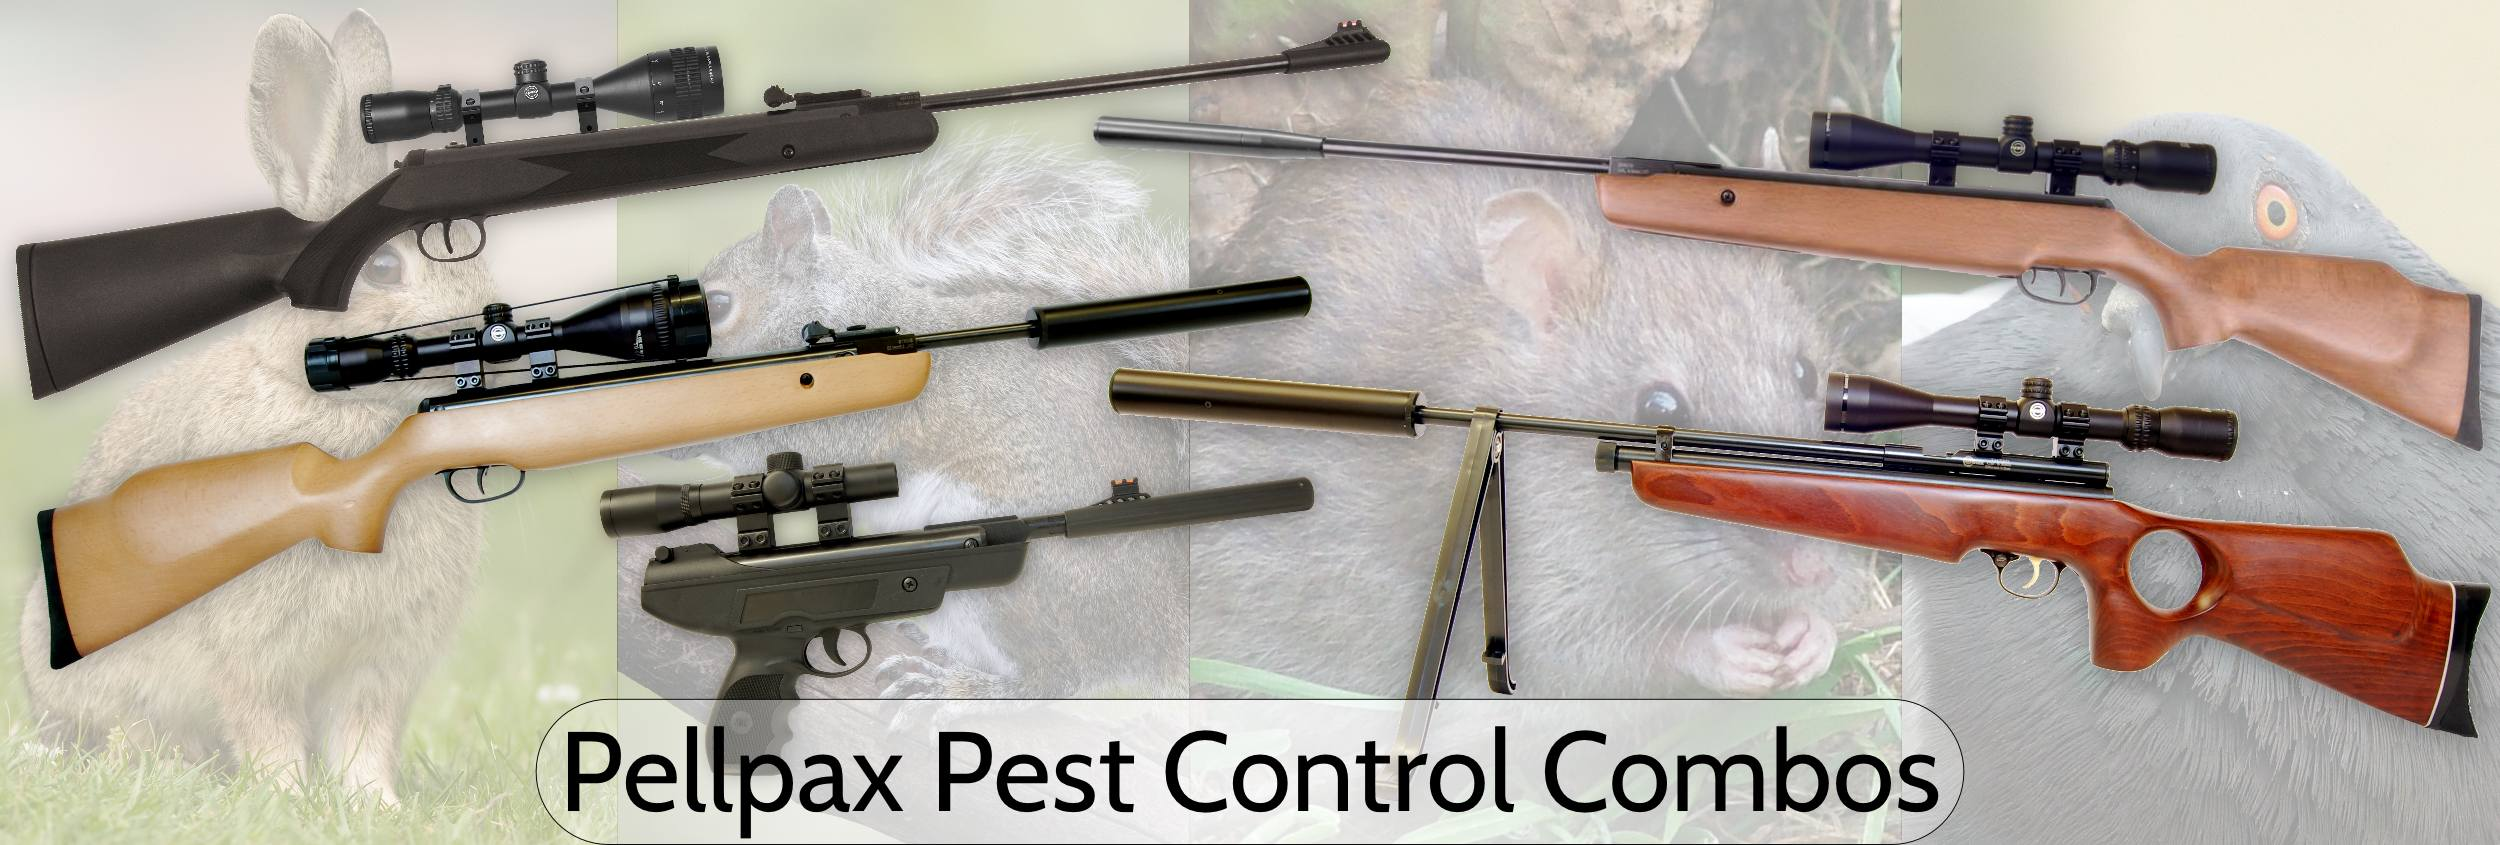 Pellpax Pest Control Combos are ideal for getting rid of most common pests in your garden such as Rats, Rabbits, Pigeons, and Squirrels.